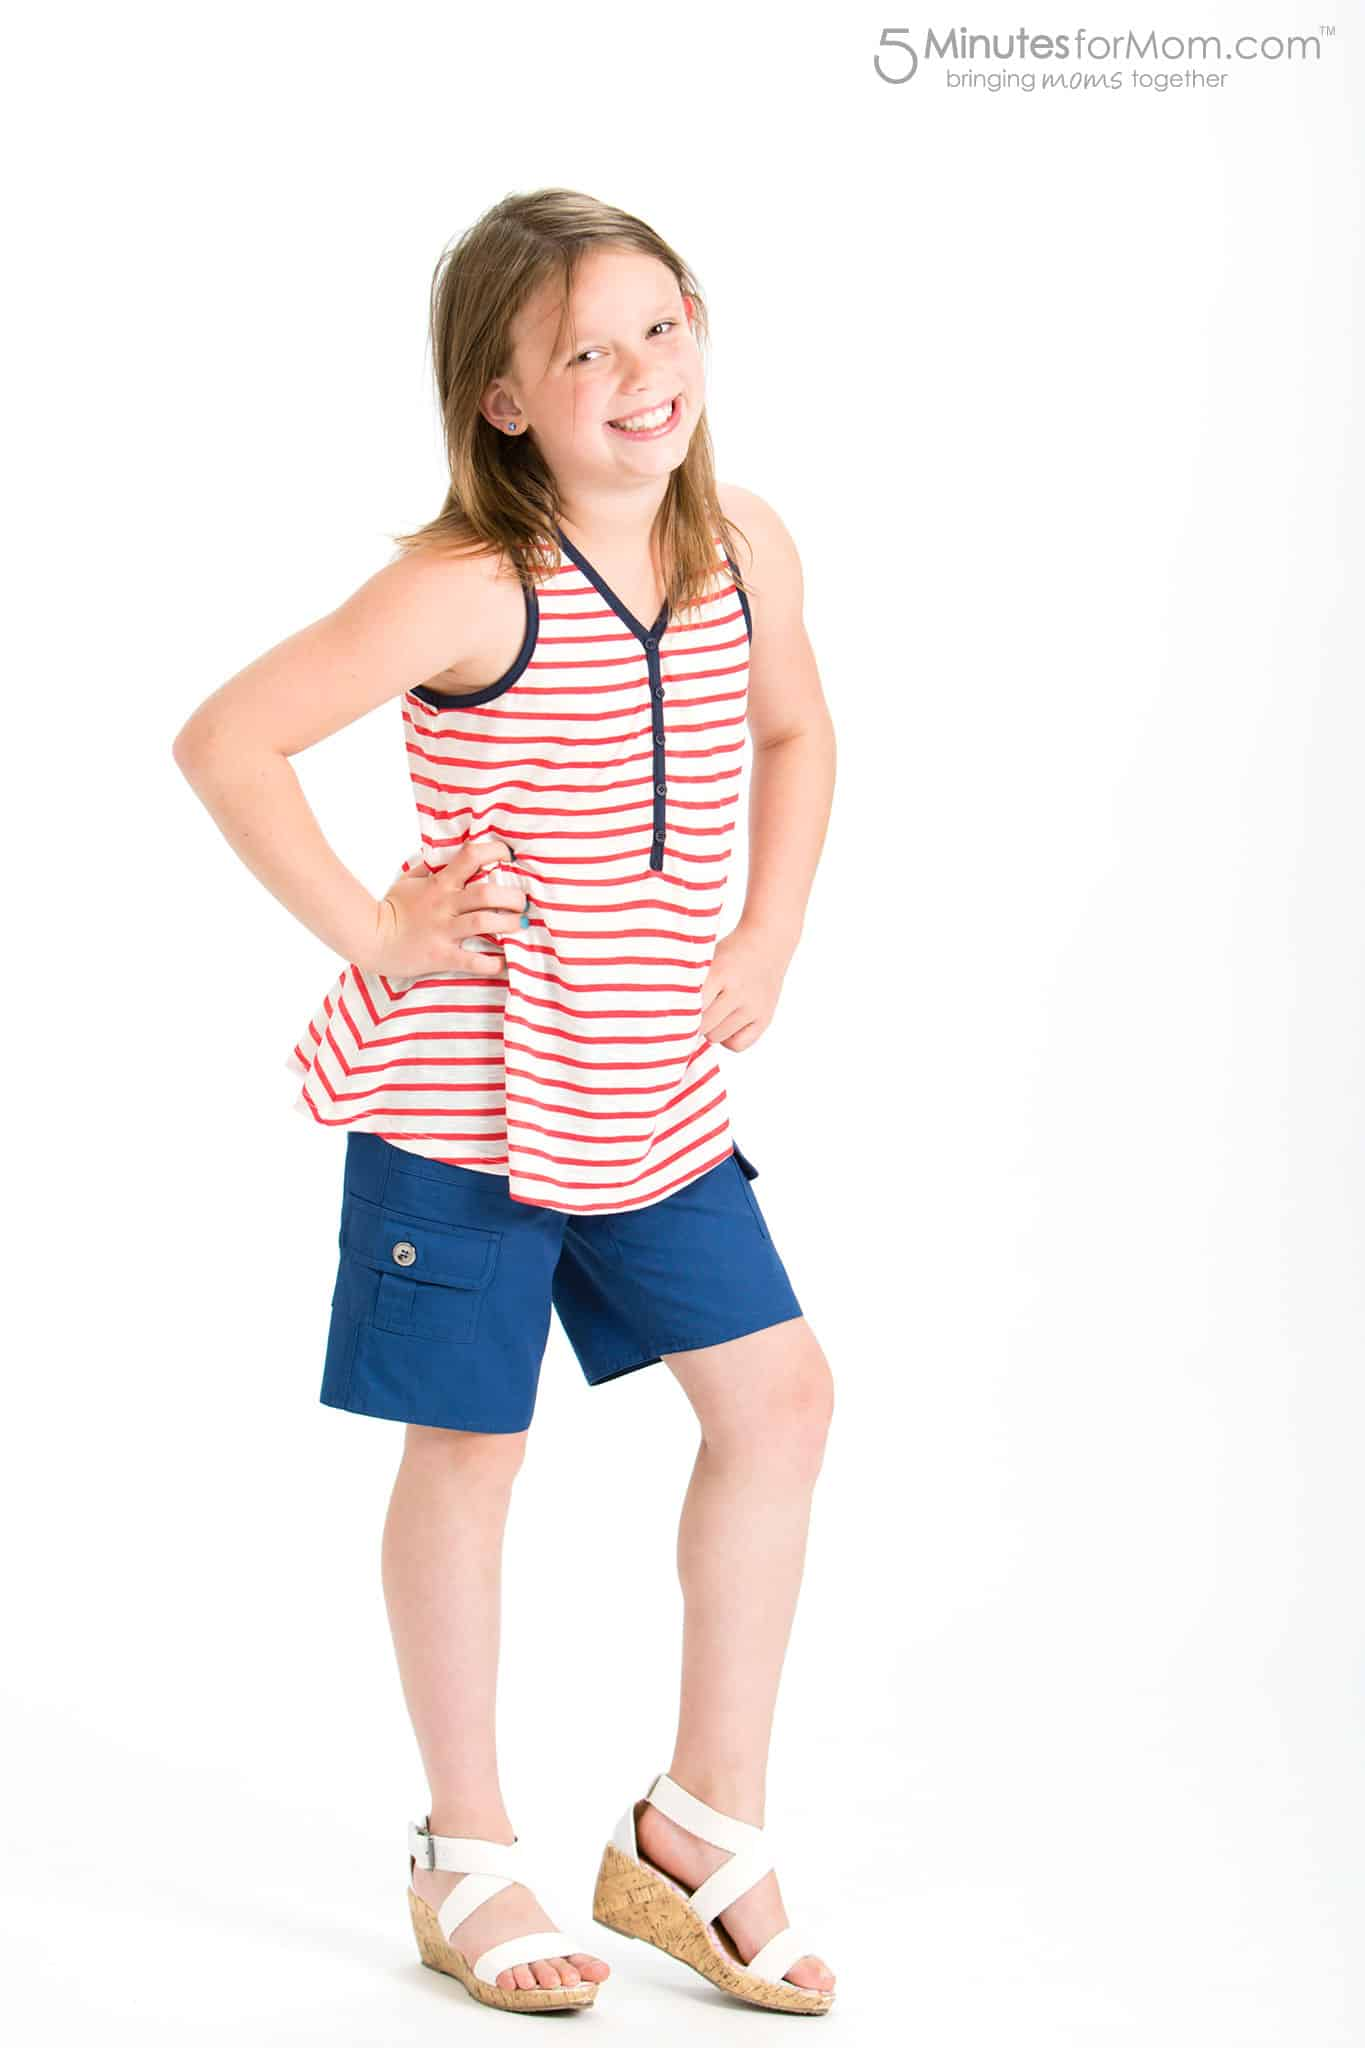 Evelyn Alex Fun Easy To Wear Clothes For Tween Girls 5